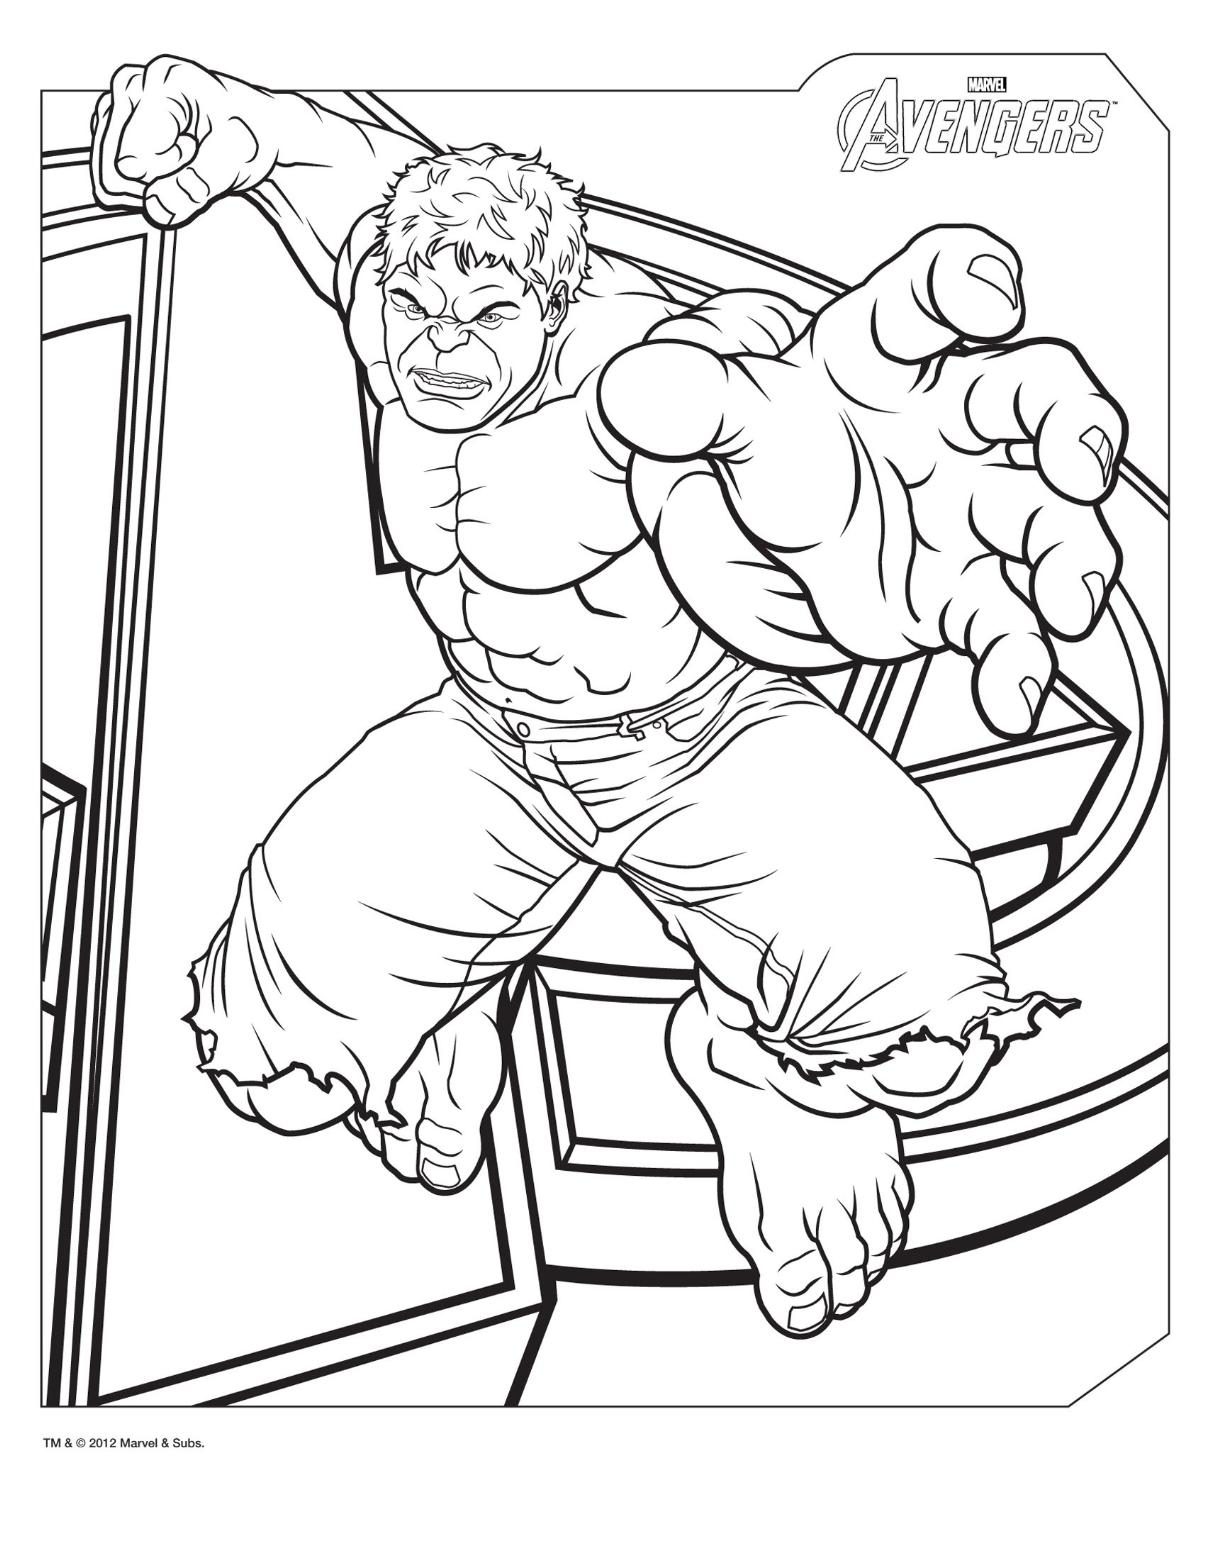 Comic Book Coloring Pages To Download And Print For Free